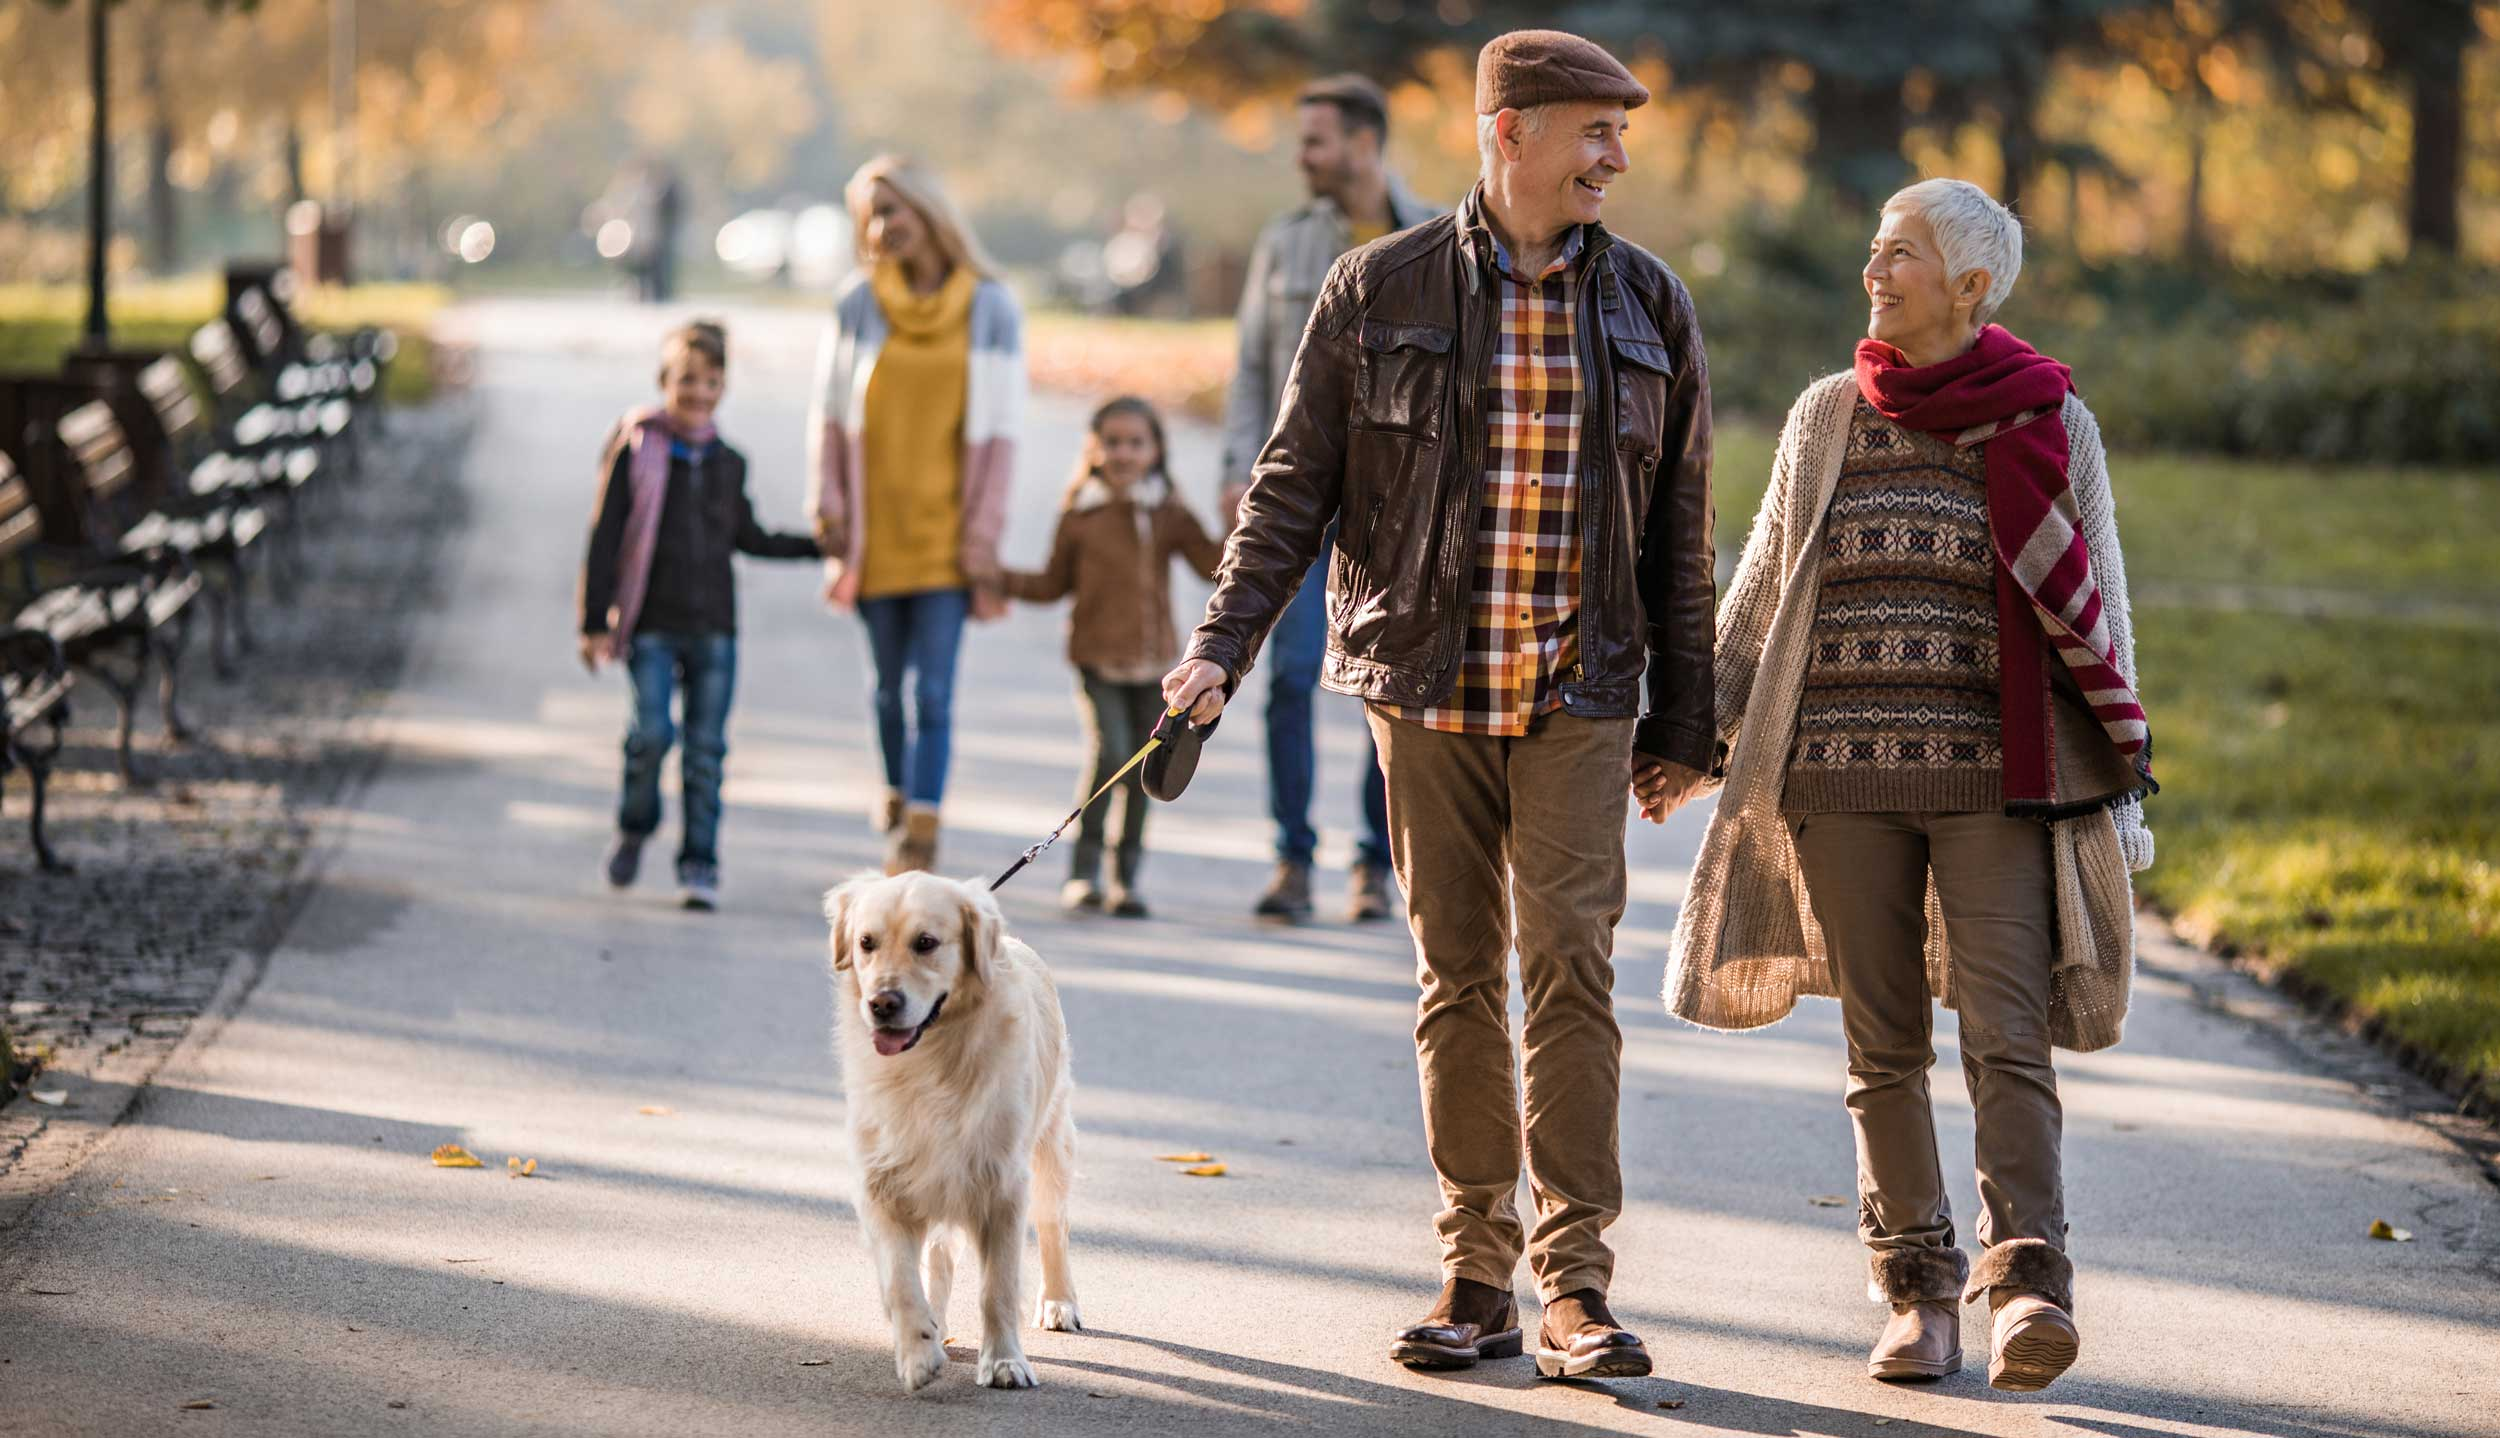 Couple walks with a dog on a paved, wooded path.